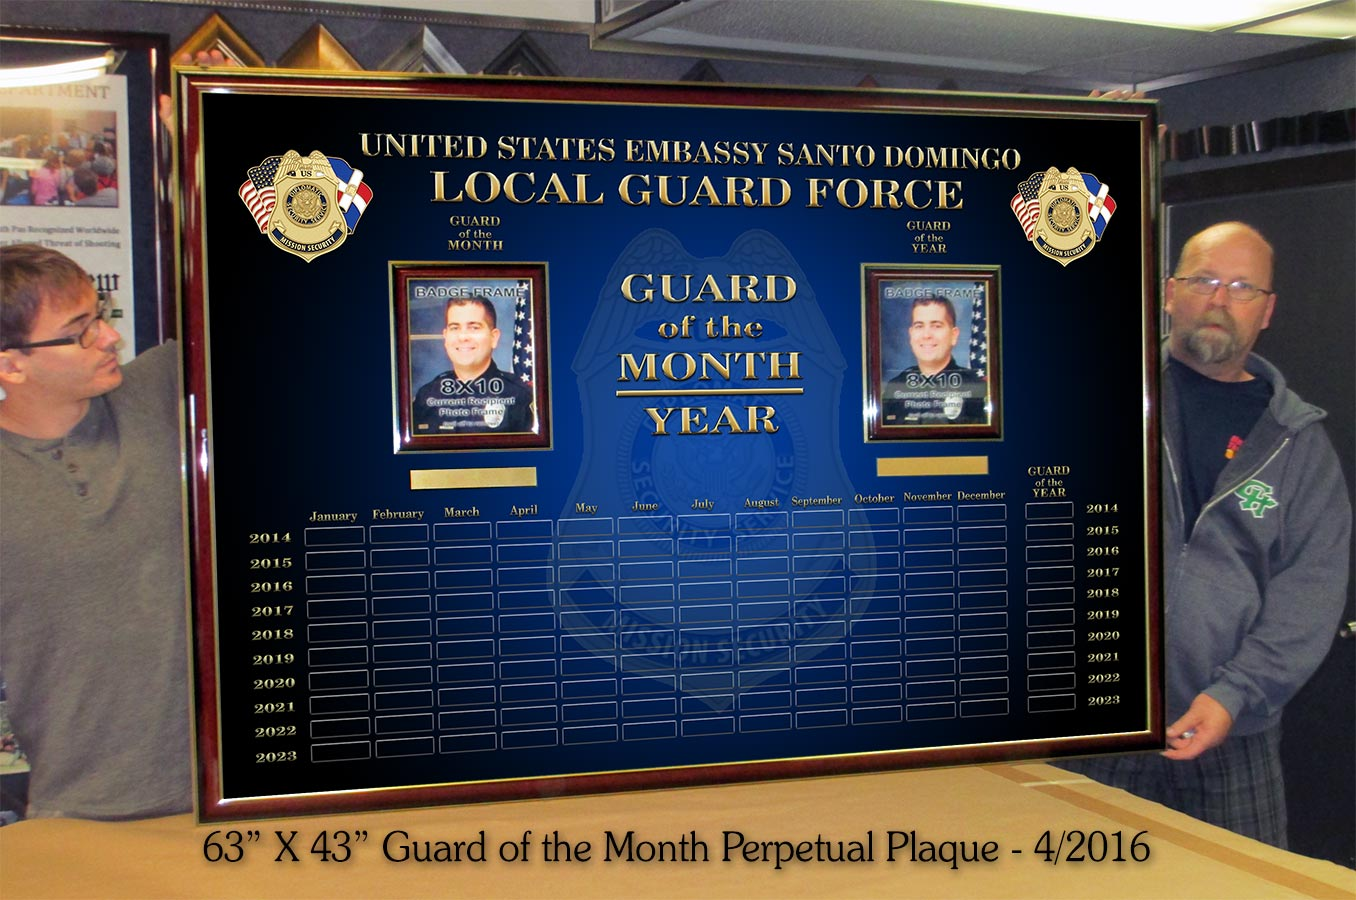 Diplomatic           Security Service - Guard on the Month / Year Perpetual Plaque           from Badge Frame